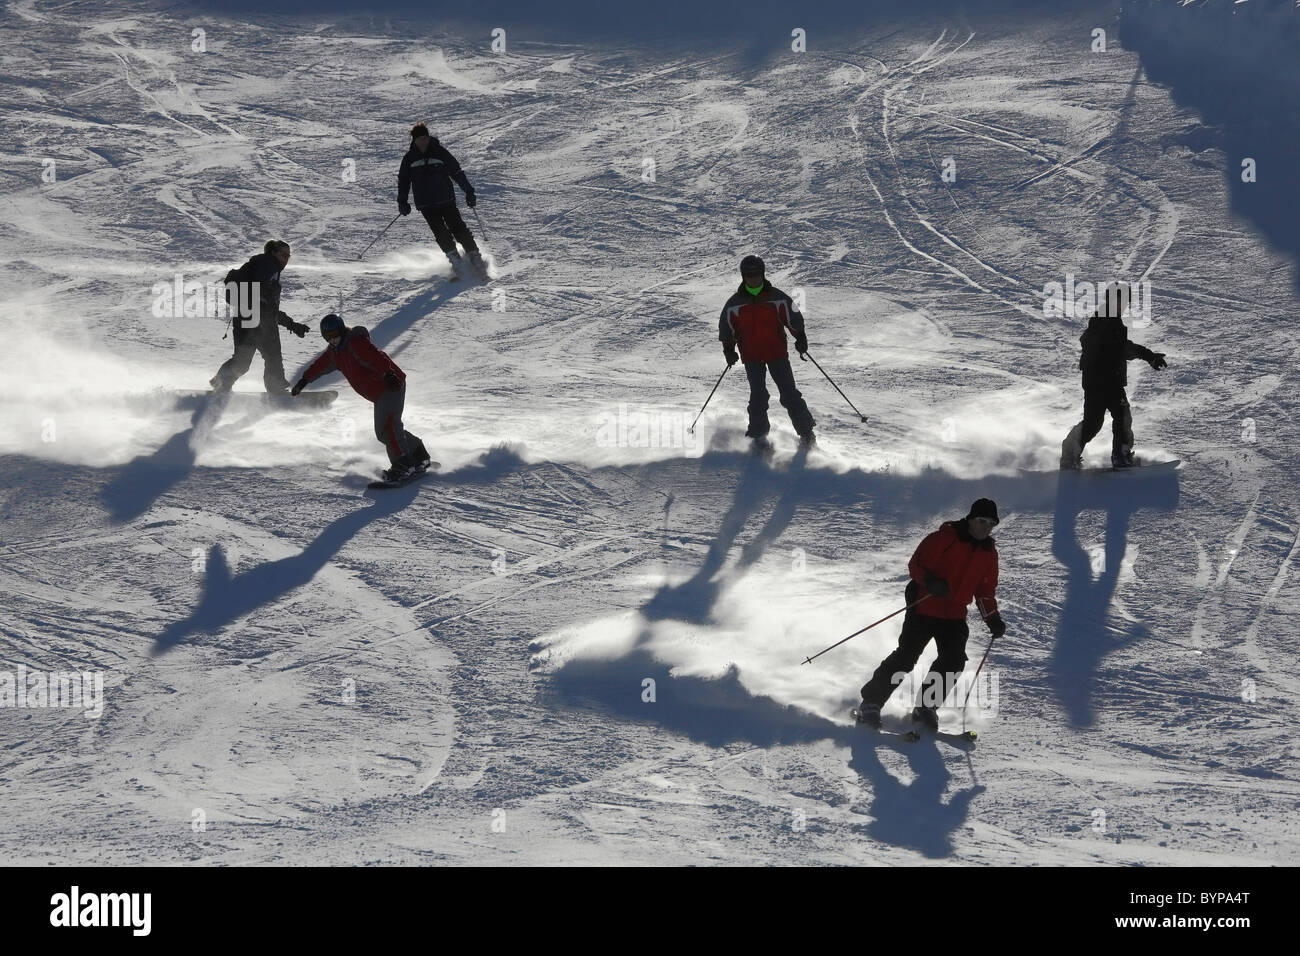 Skiers skiing on the hills of  Austria, Zillertal, Europe - Stock Image